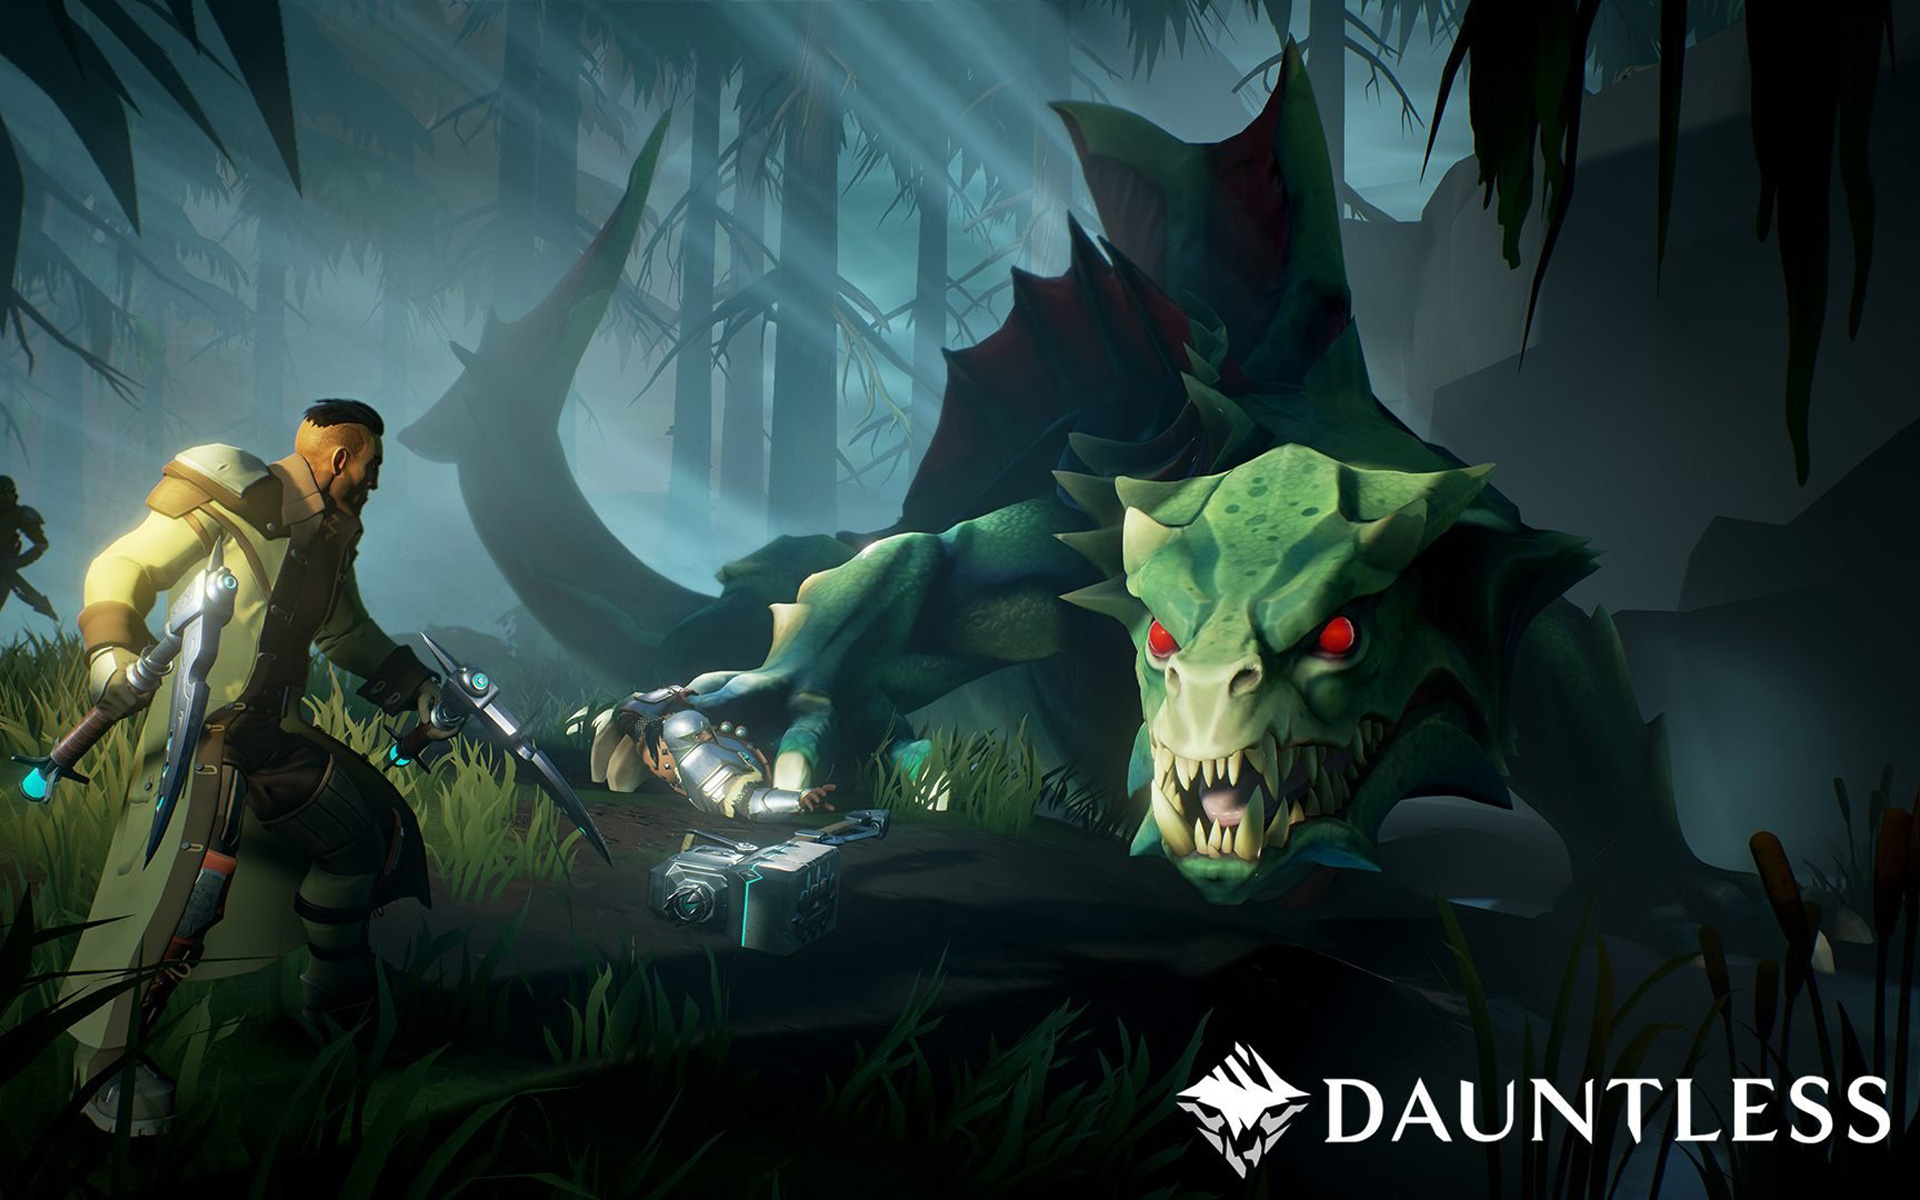 Free Dauntless Wallpaper in 1920x1200